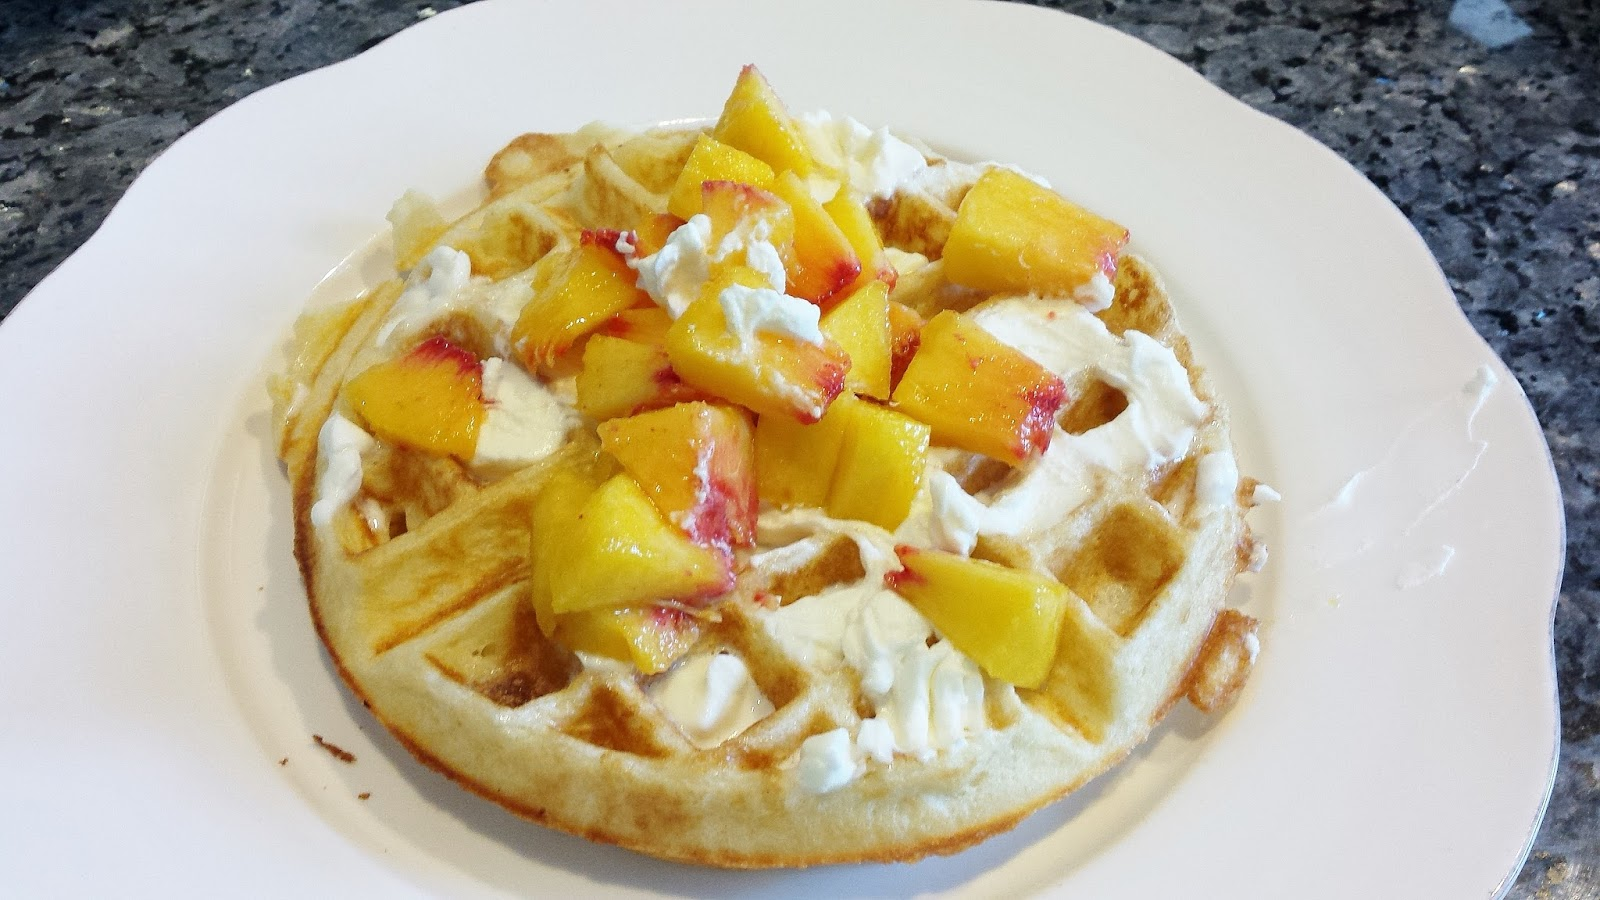 Waffle topped with whipped cream and fresh peaches